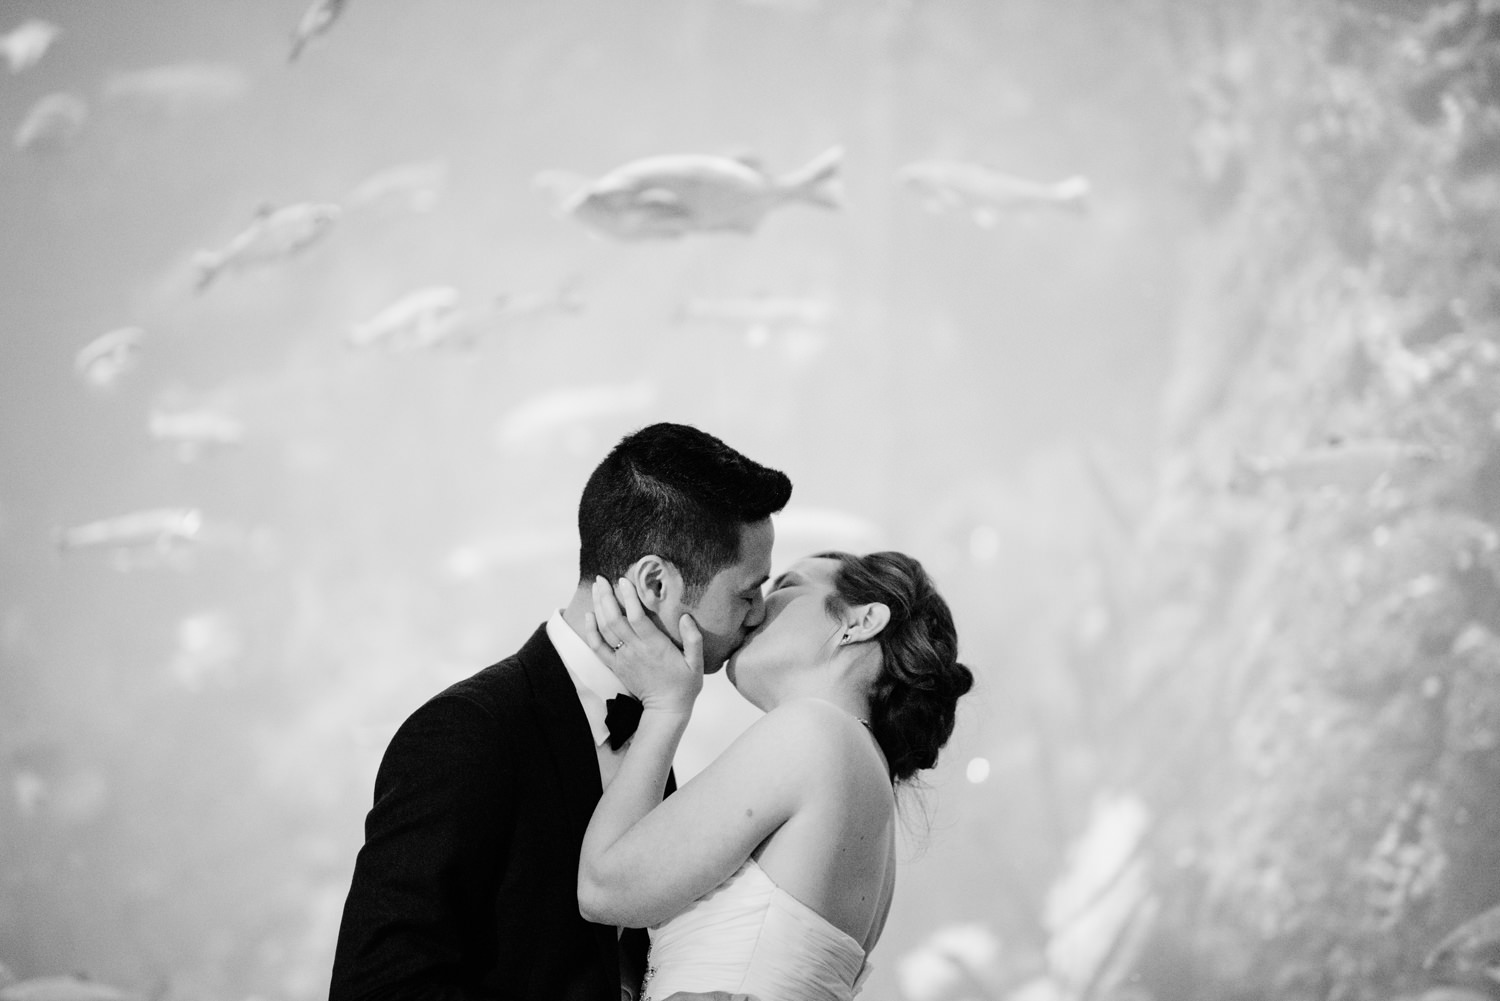 ryan-flynn-best-wedding-photography-2015-seattle-film-photographer-0111.JPG